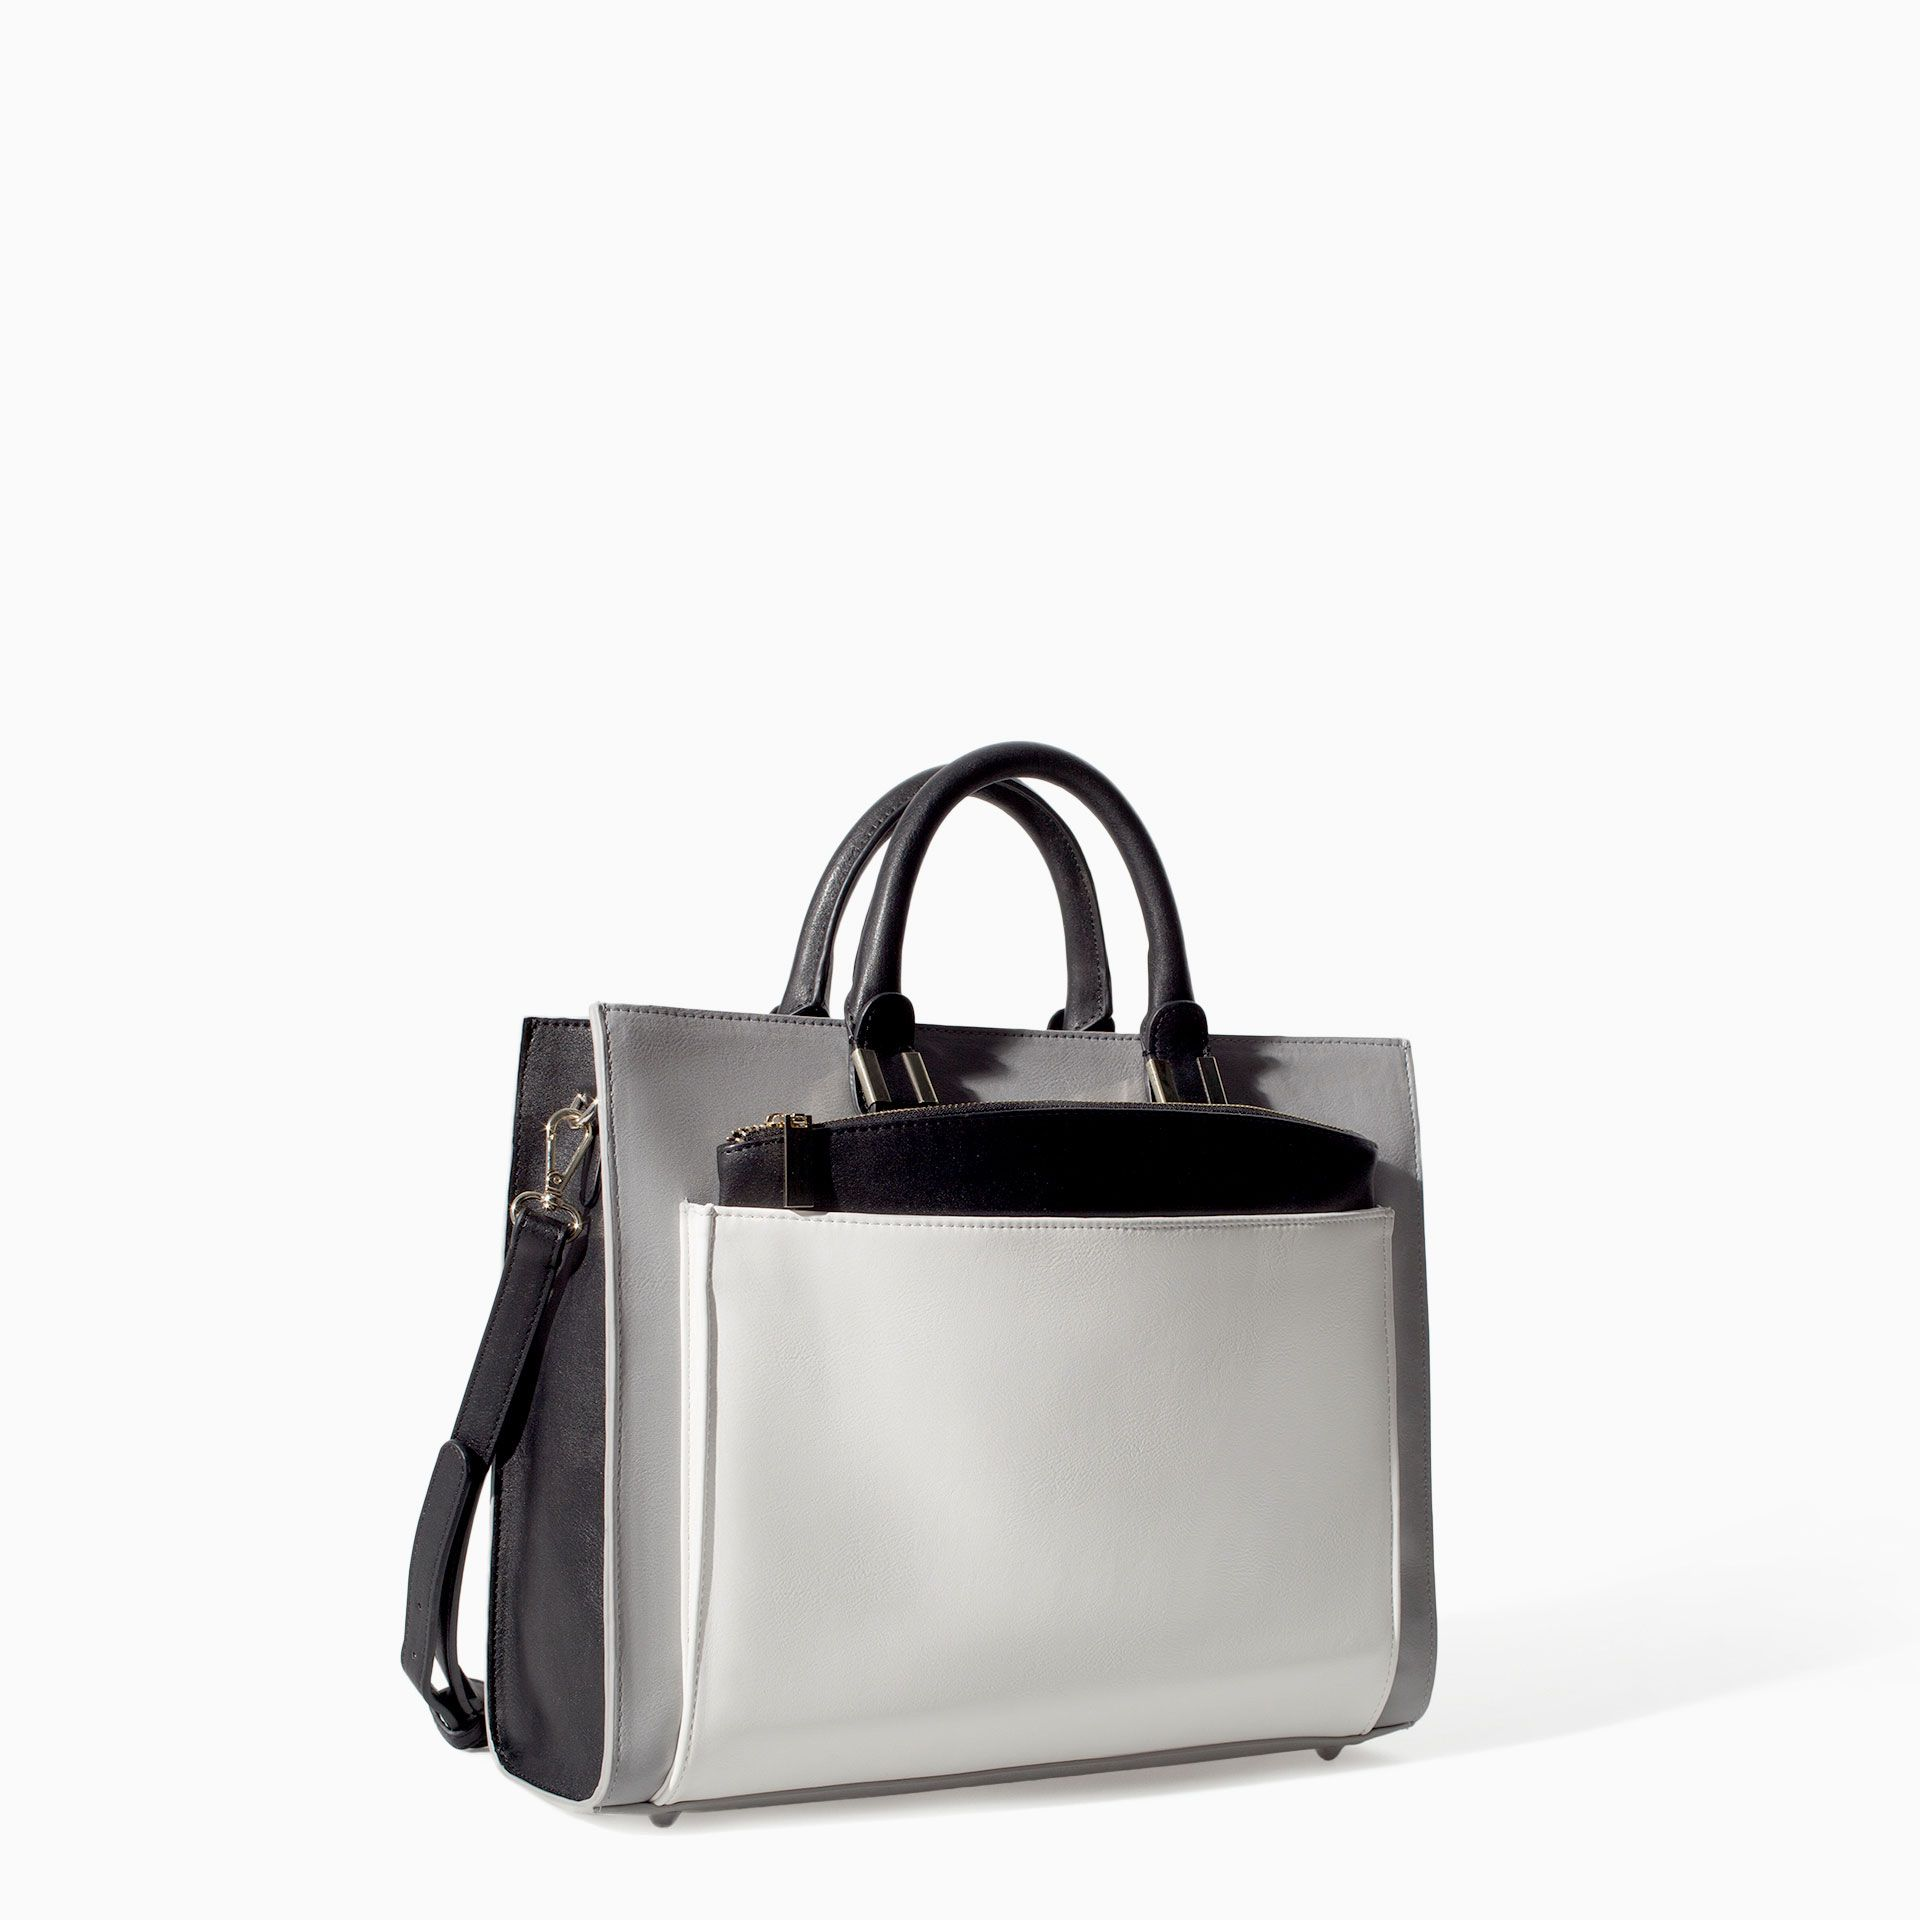 Image 2 of COMBINED OFFICE CITYBAG from Zara Fashion Generally